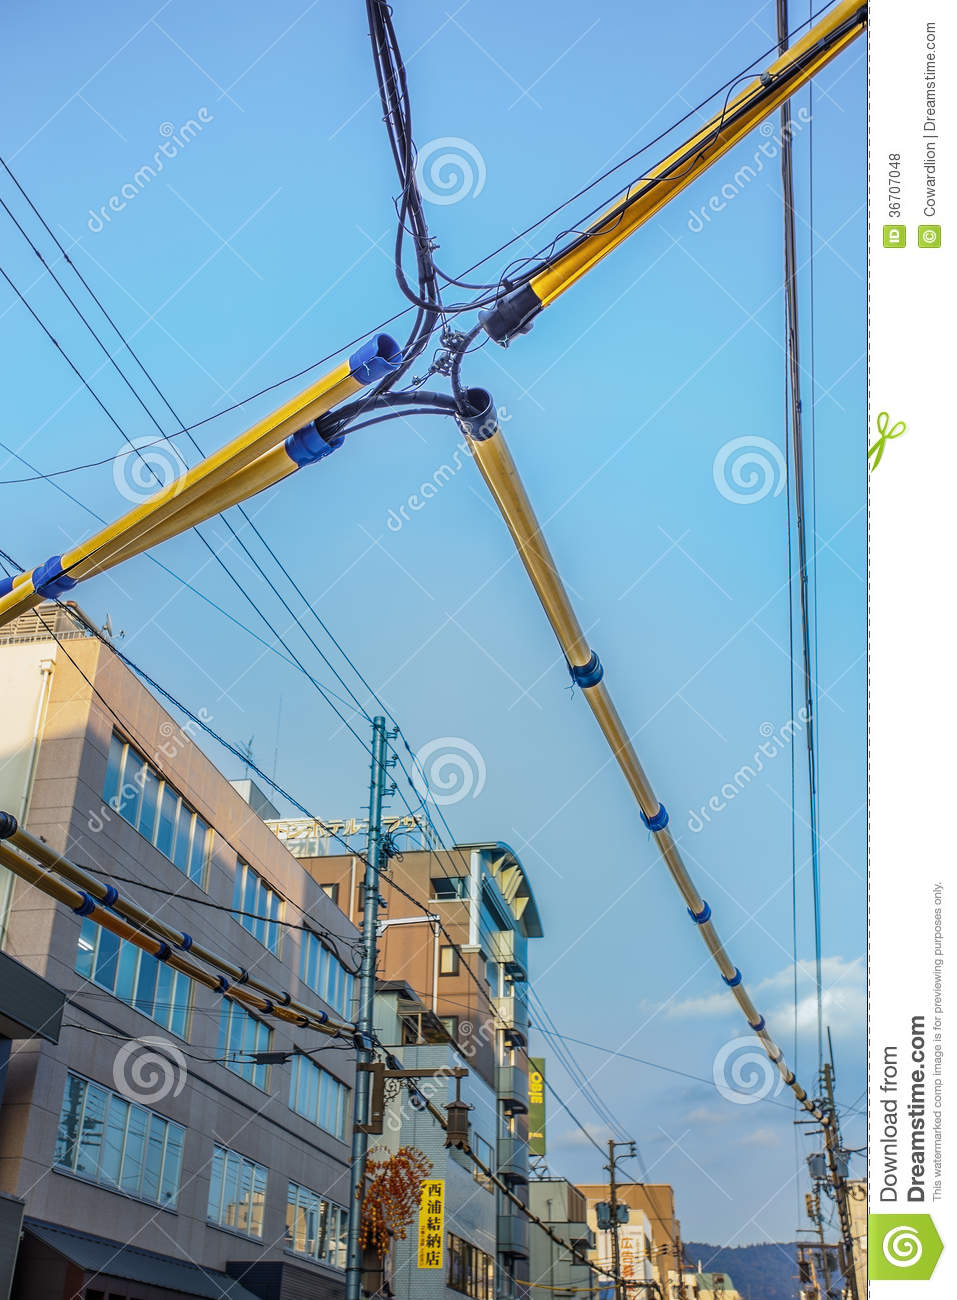 medium resolution of special treated cover for electrical and telephone line wiring protecting from weather at sanjo dori street